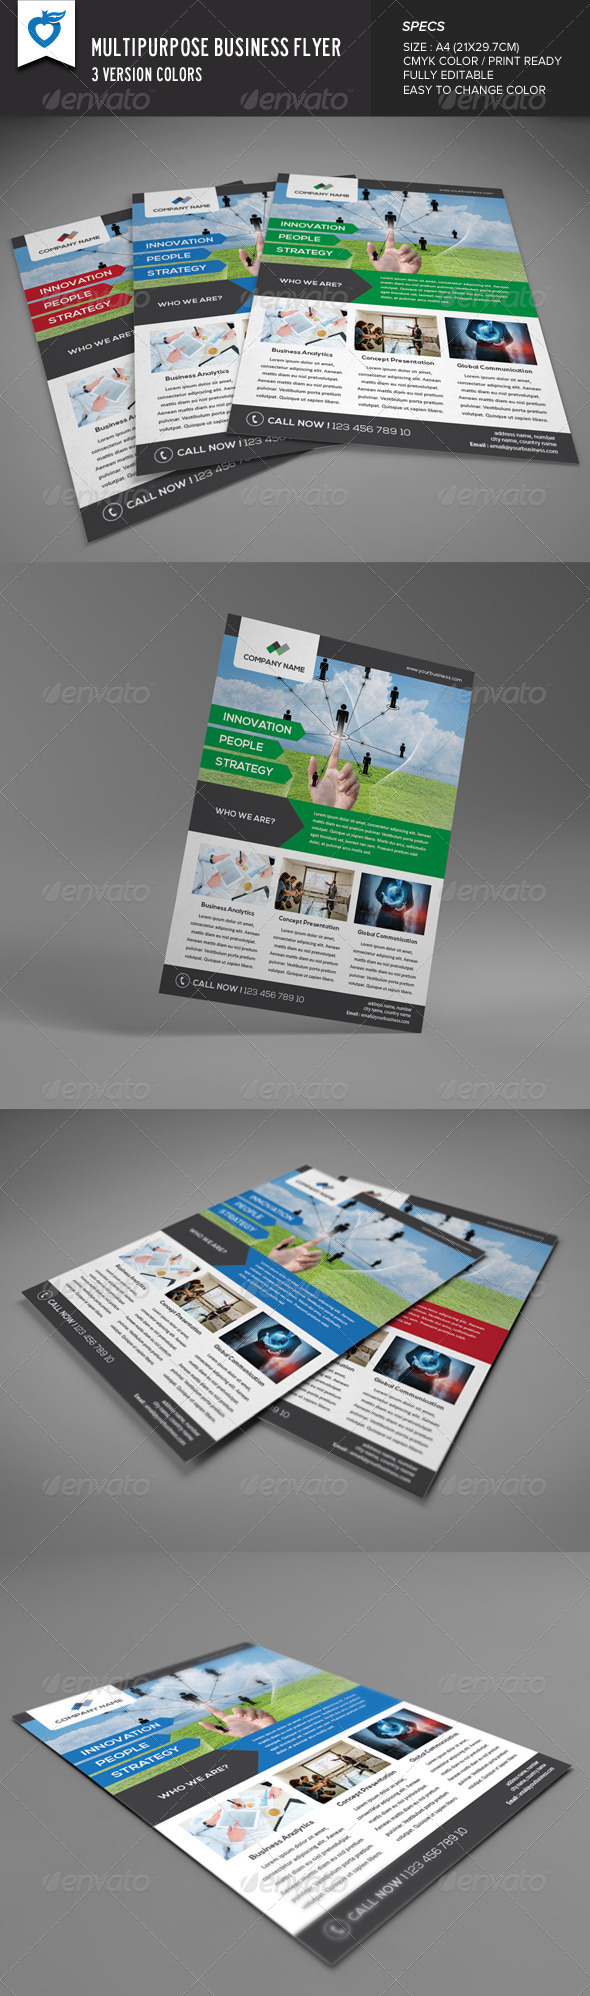 GraphicRiver Multipurpose Business Flyer v8 8358063